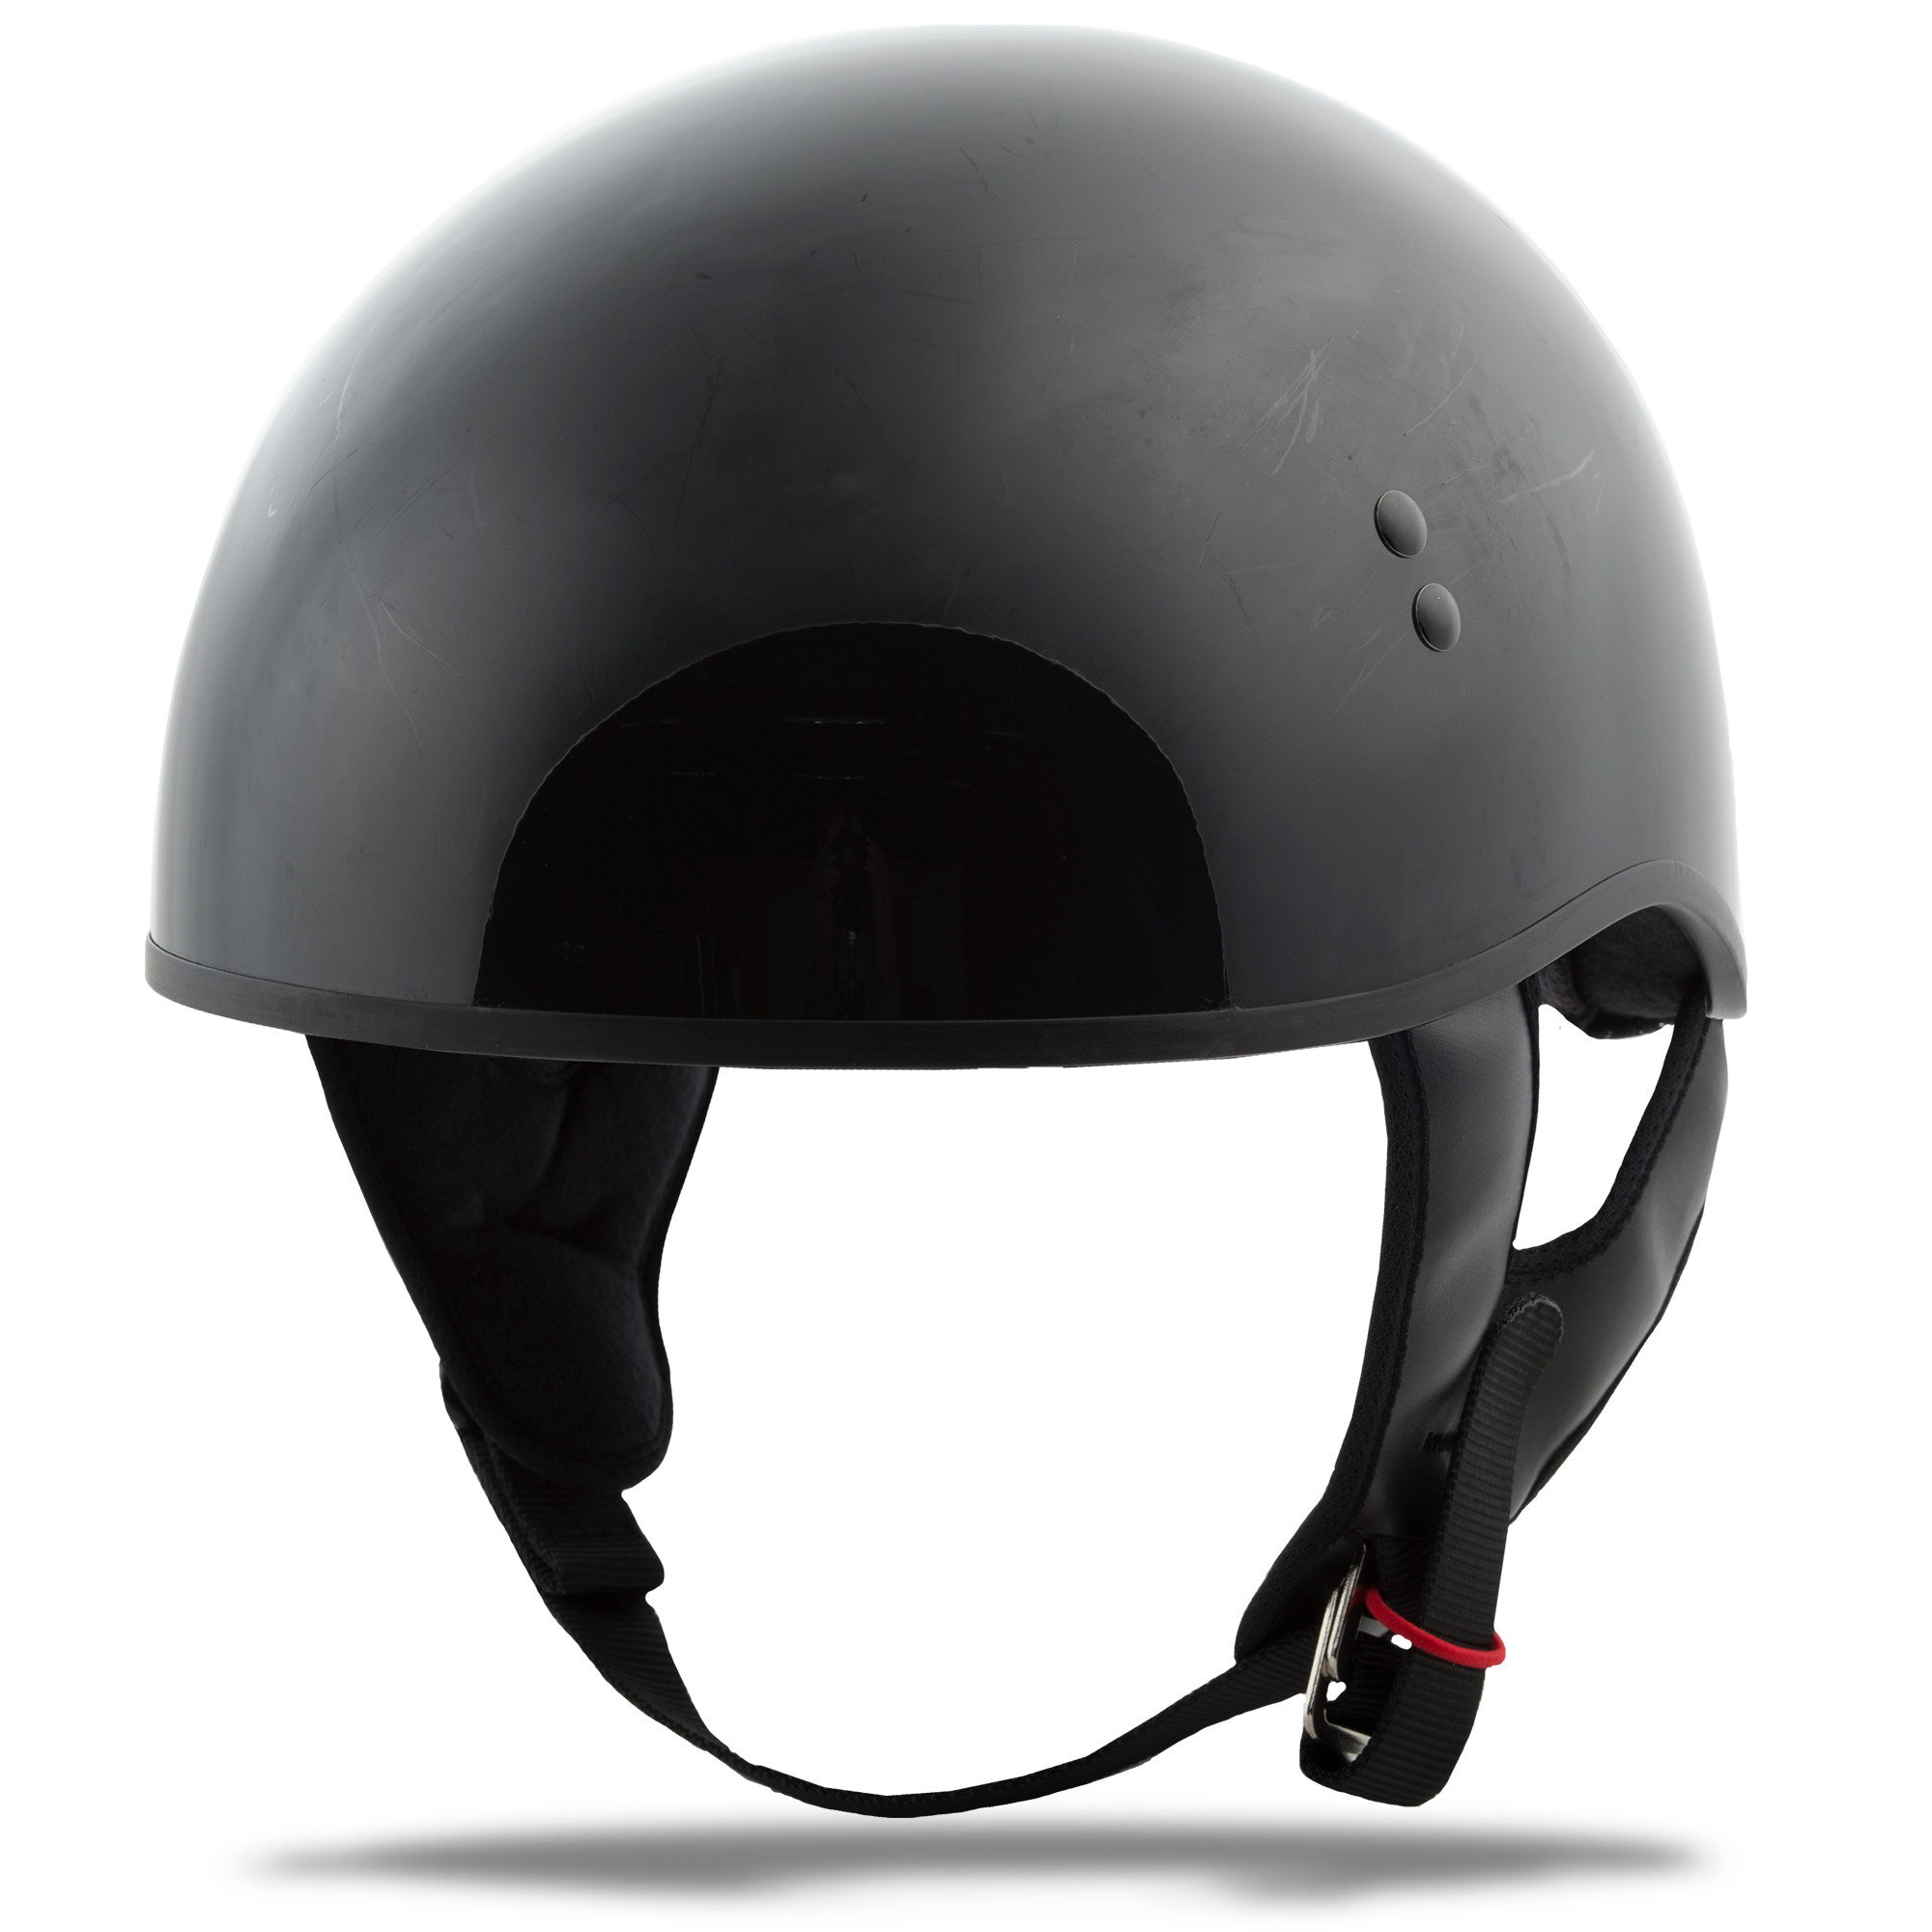 GM-45 HALF Helmet Naked,  Black LG 72-6430L